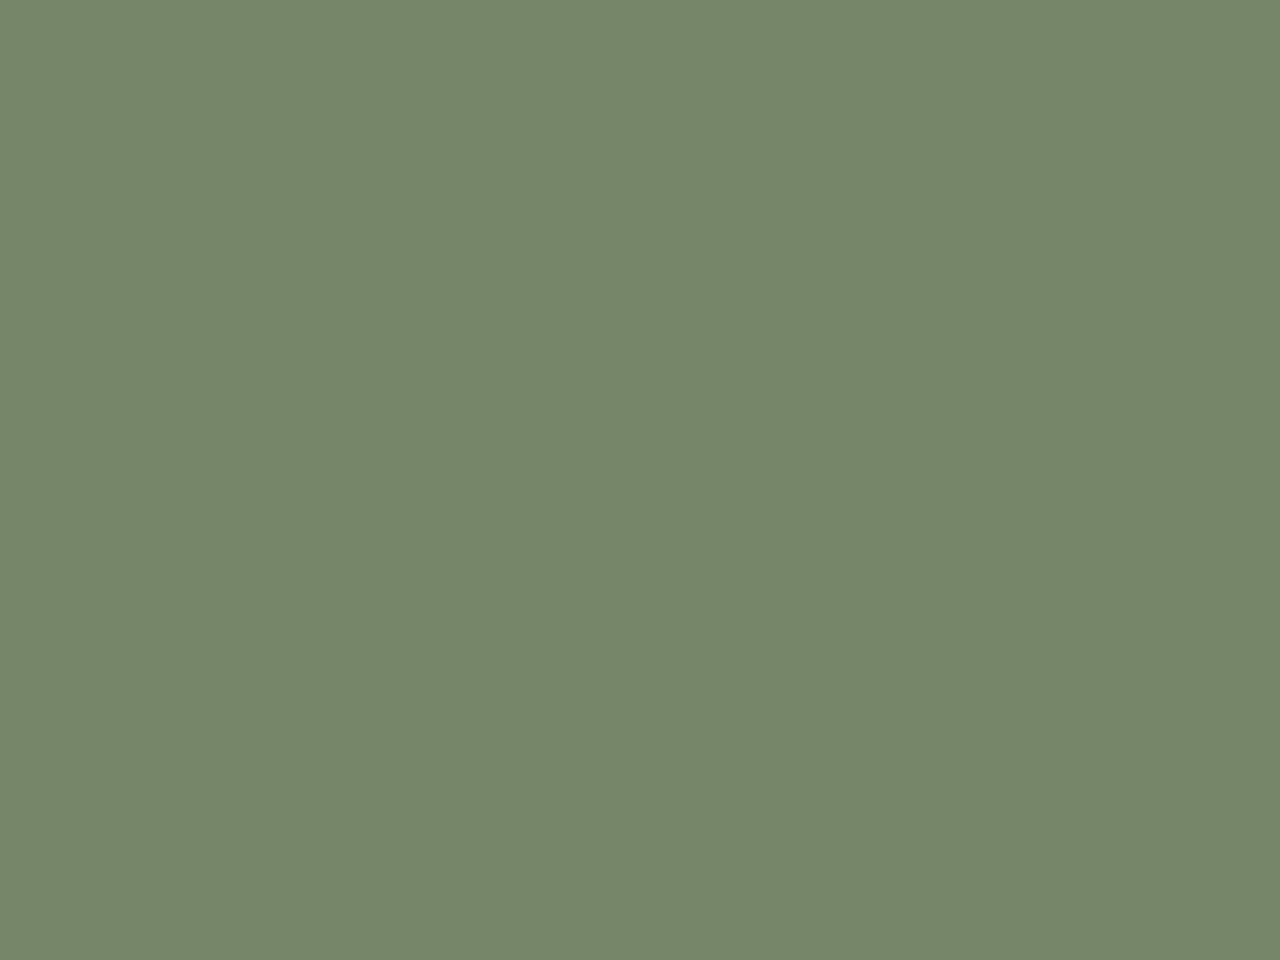 1280x960 Camouflage Green Solid Color Background